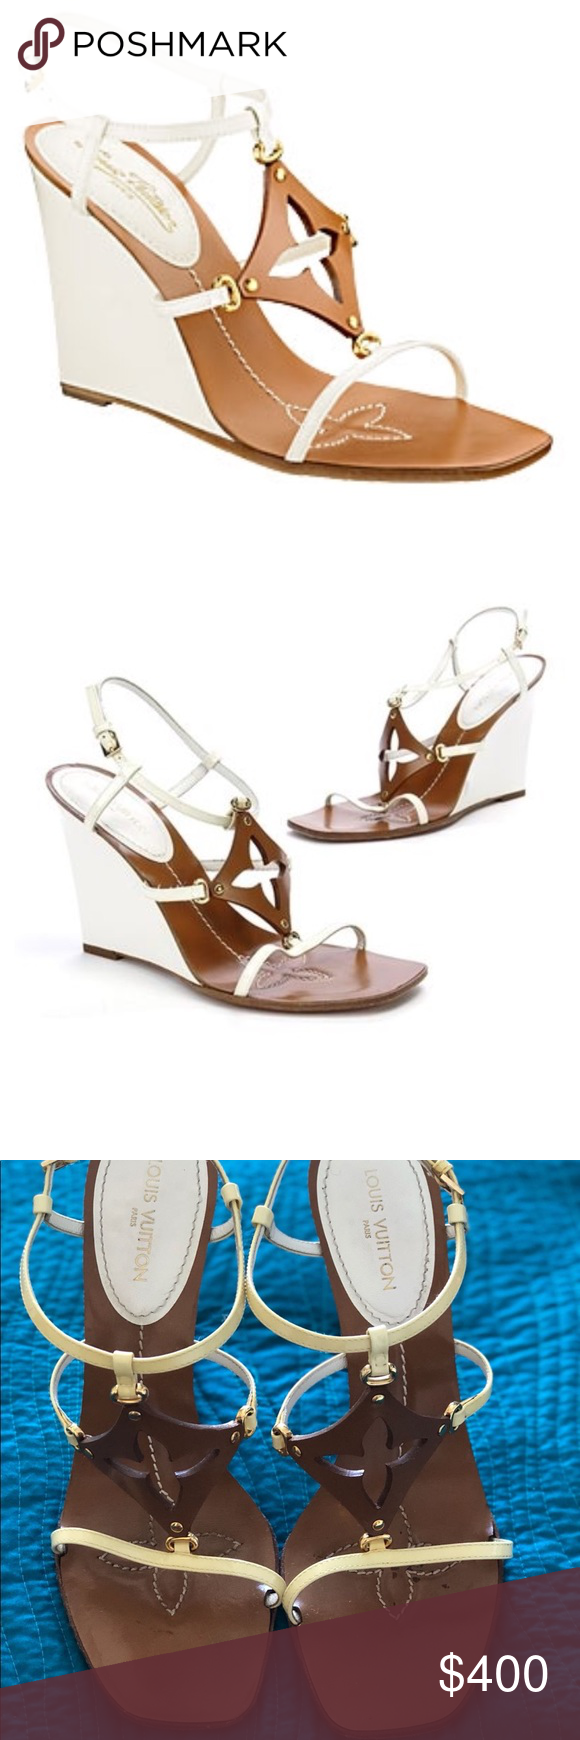 51be101e5bfc Louis Vuitton capricieuse wedge sandals sz. 81 2 The brown leather in front  forms